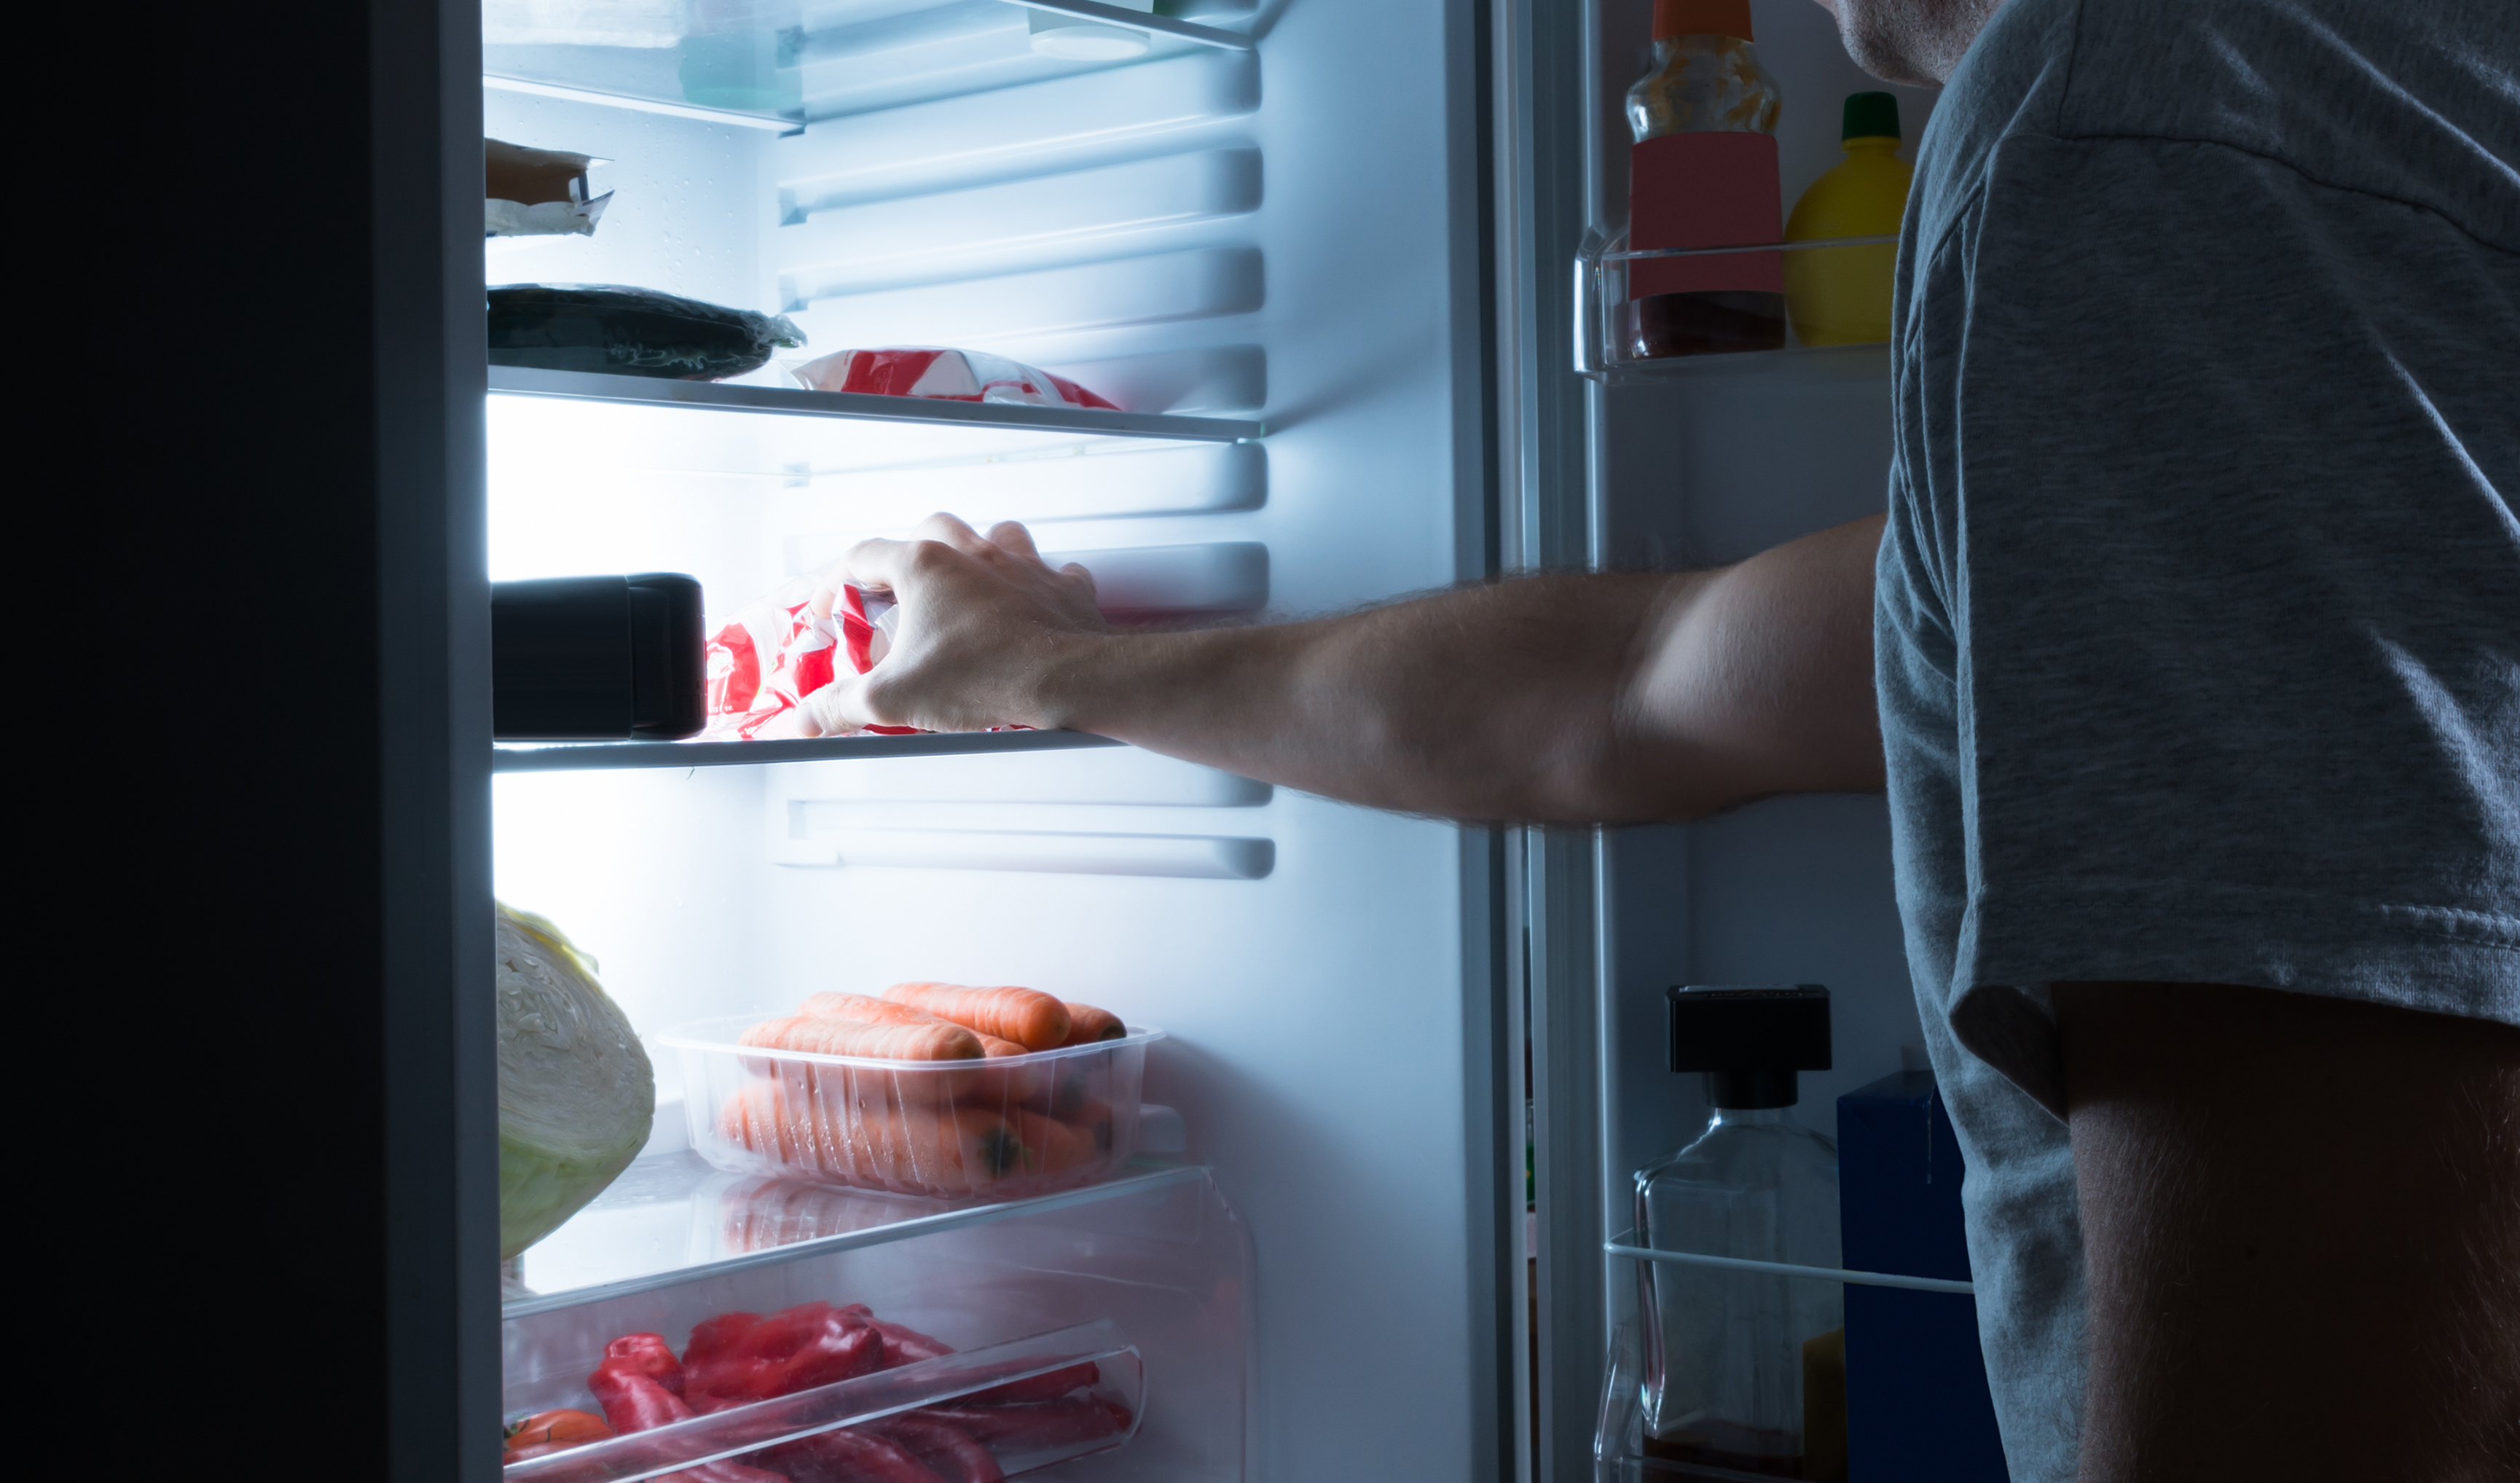 An Ode To The Single Dude's Refrigerator